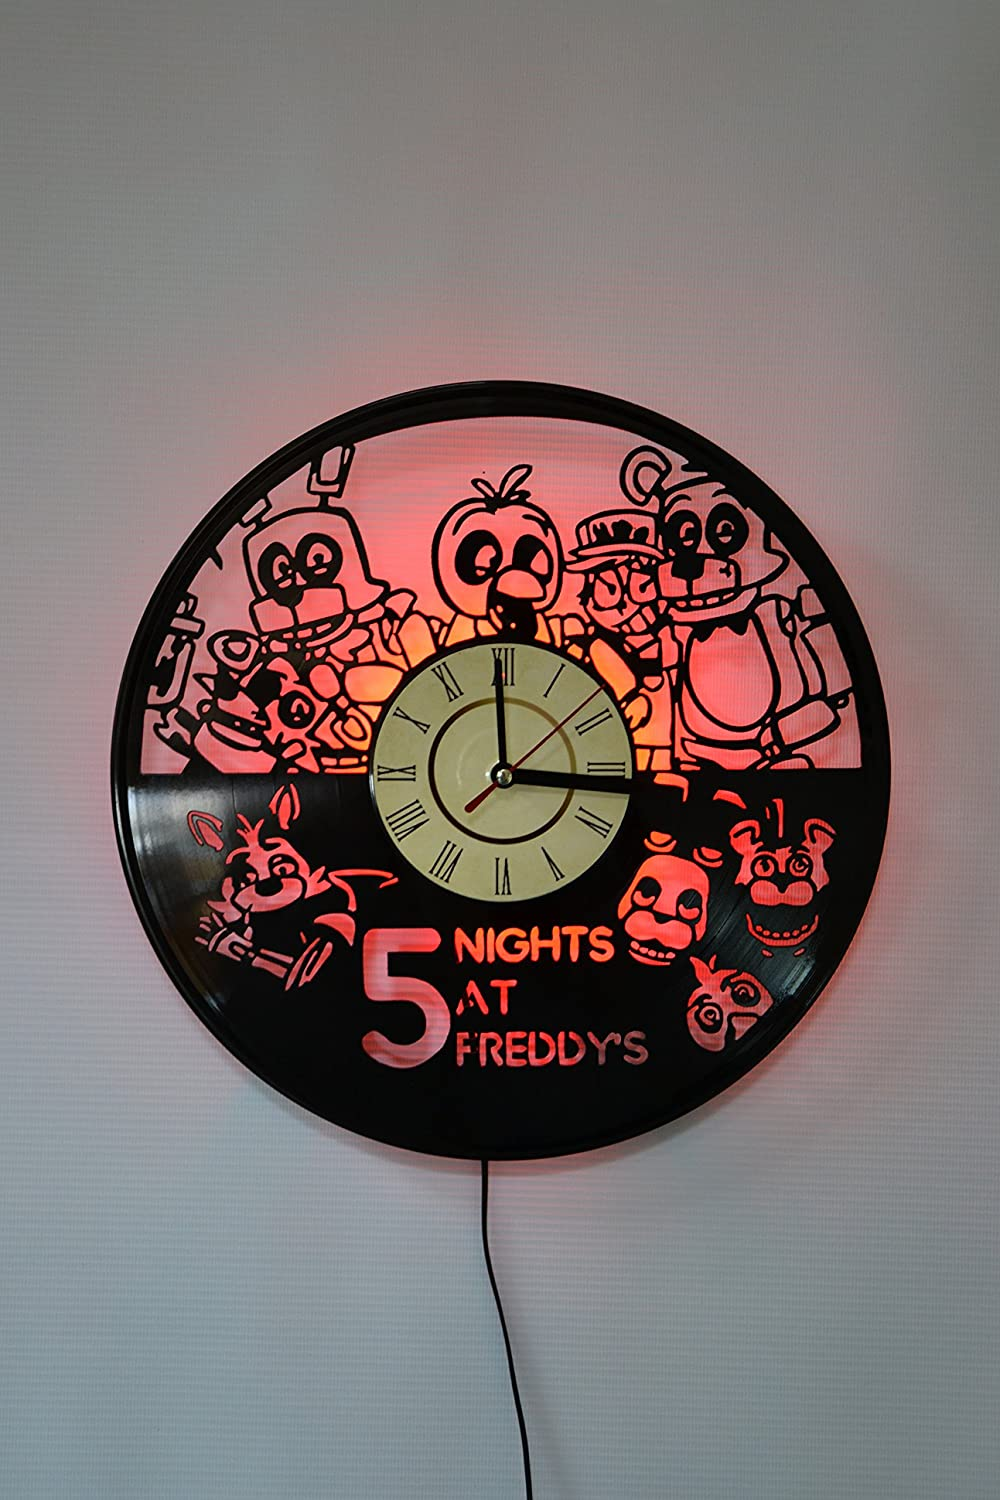 Five Nights at Freddy's Design Wall Light, Night Light Function, Original Home Interior Decor, Wall Lamp, Perfect Gift (Red) Home Decor Accents